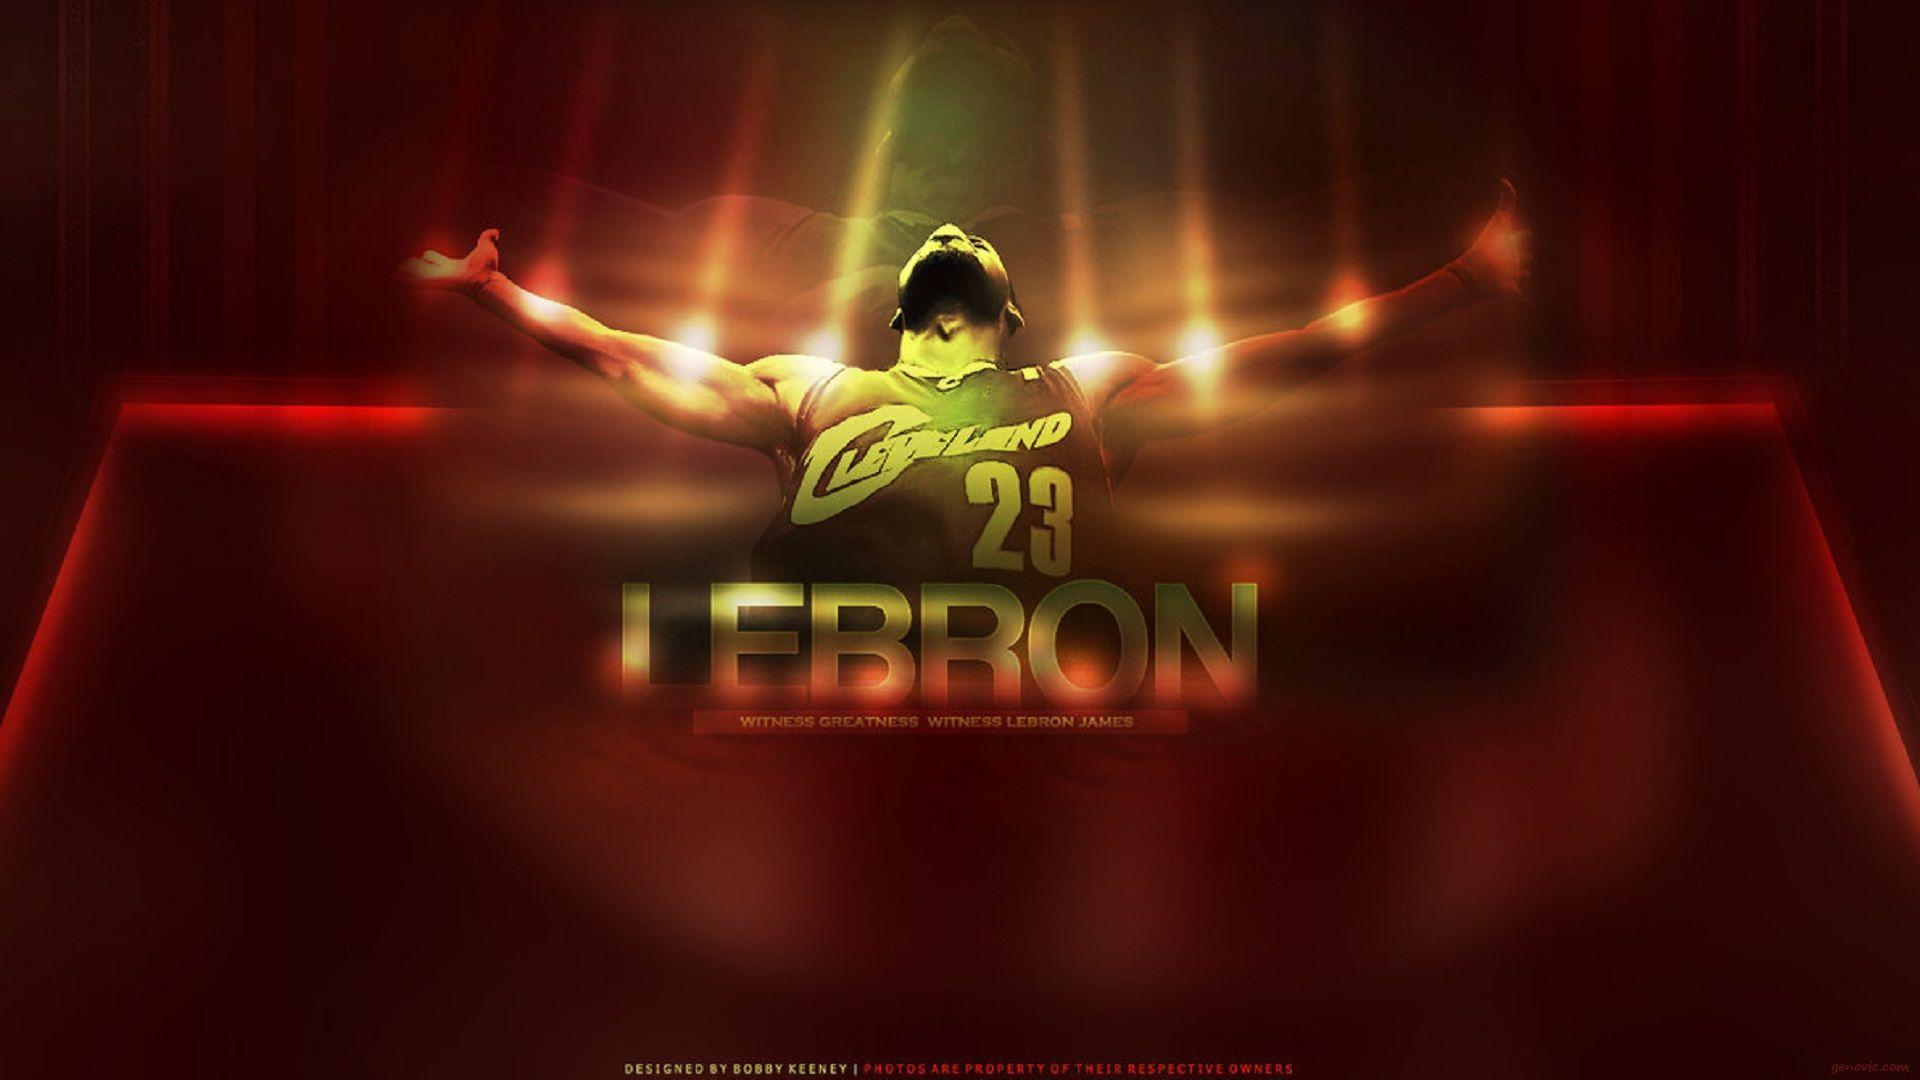 Geography Hd Wallpaper Lebron James Cleveland Wallpapers 2015 Wallpaper Cave